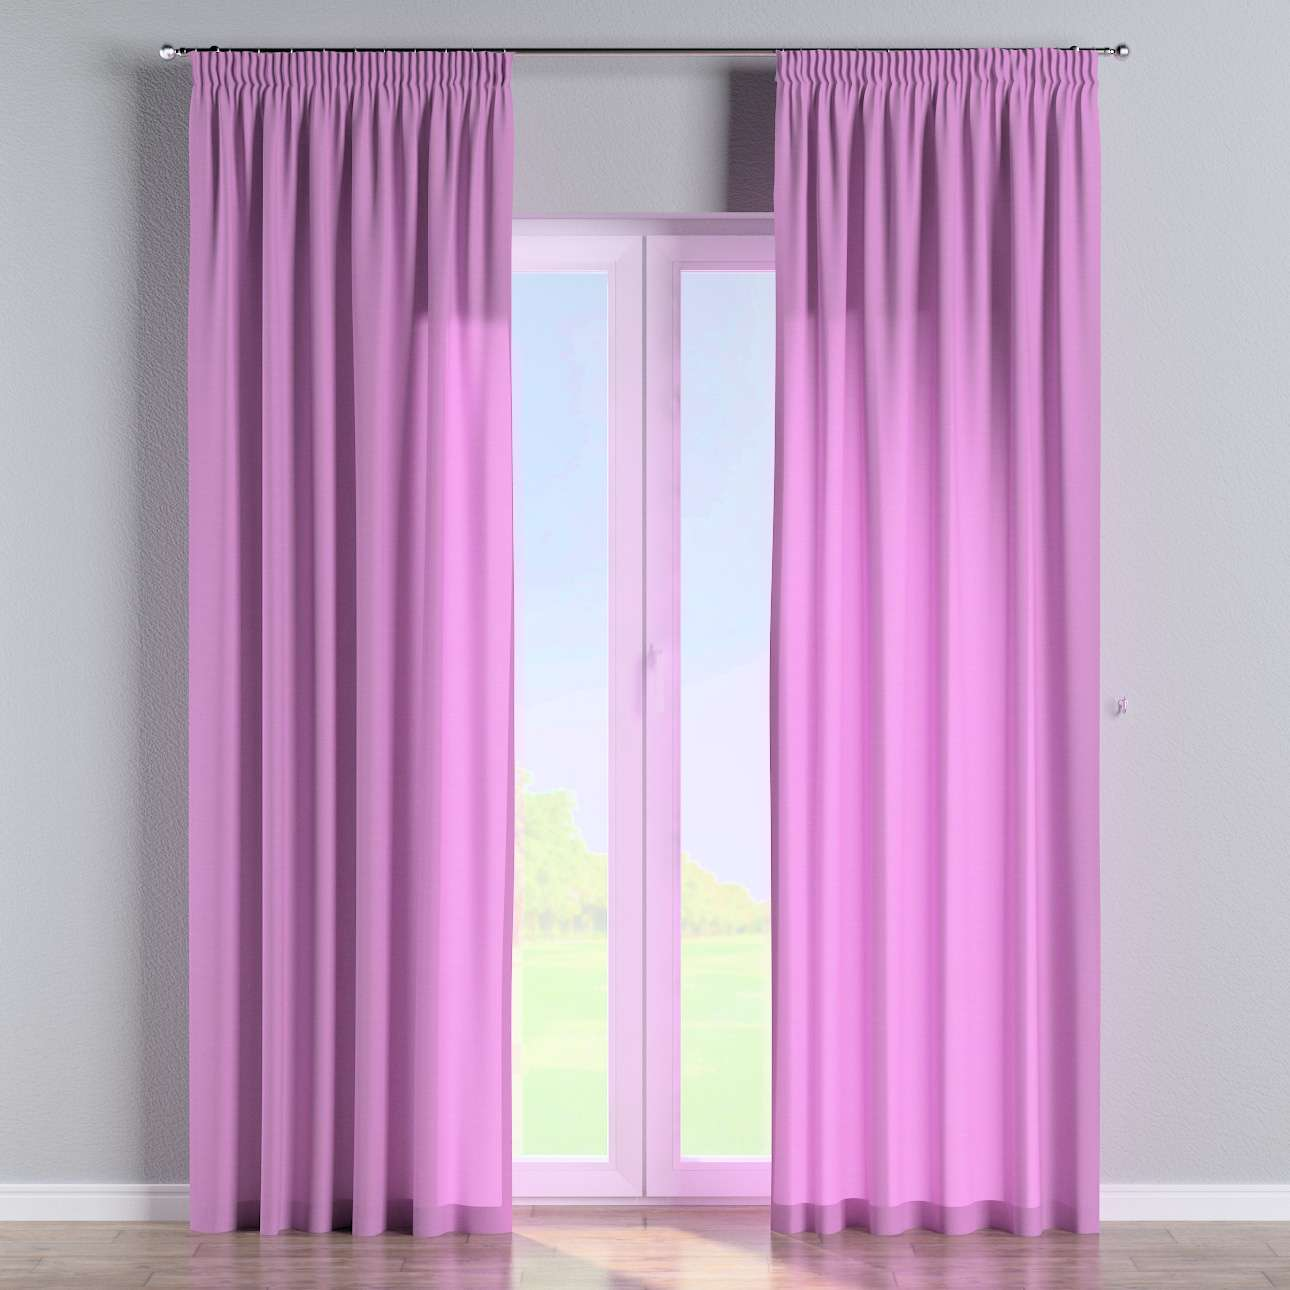 Pencil pleat curtains 130 x 260 cm (51 x 102 inch) in collection Loneta , fabric: 133-38